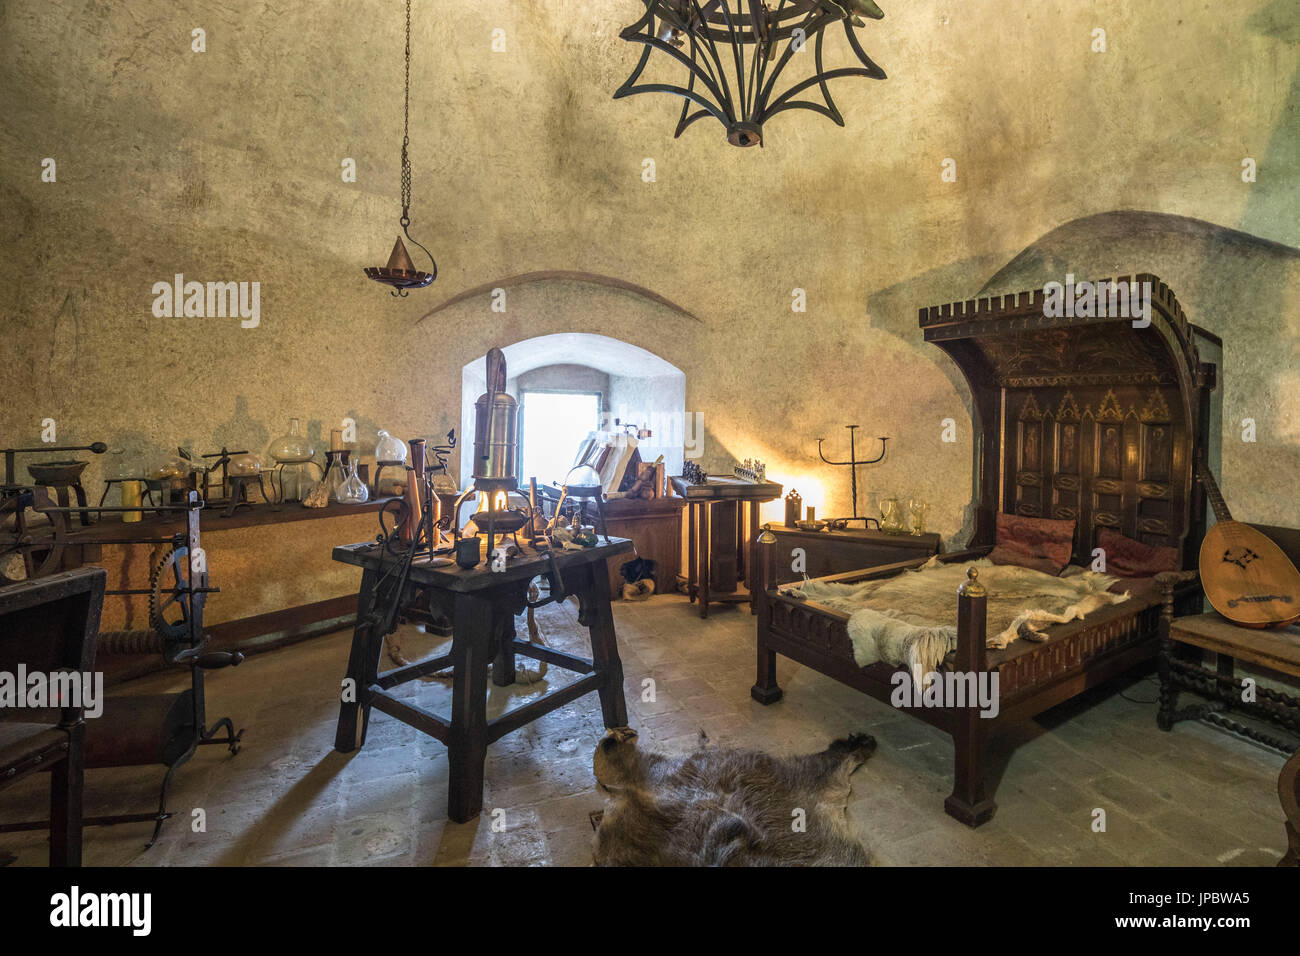 Architecture bedroom castle stockfotos architecture - Antike schlafzimmer ...